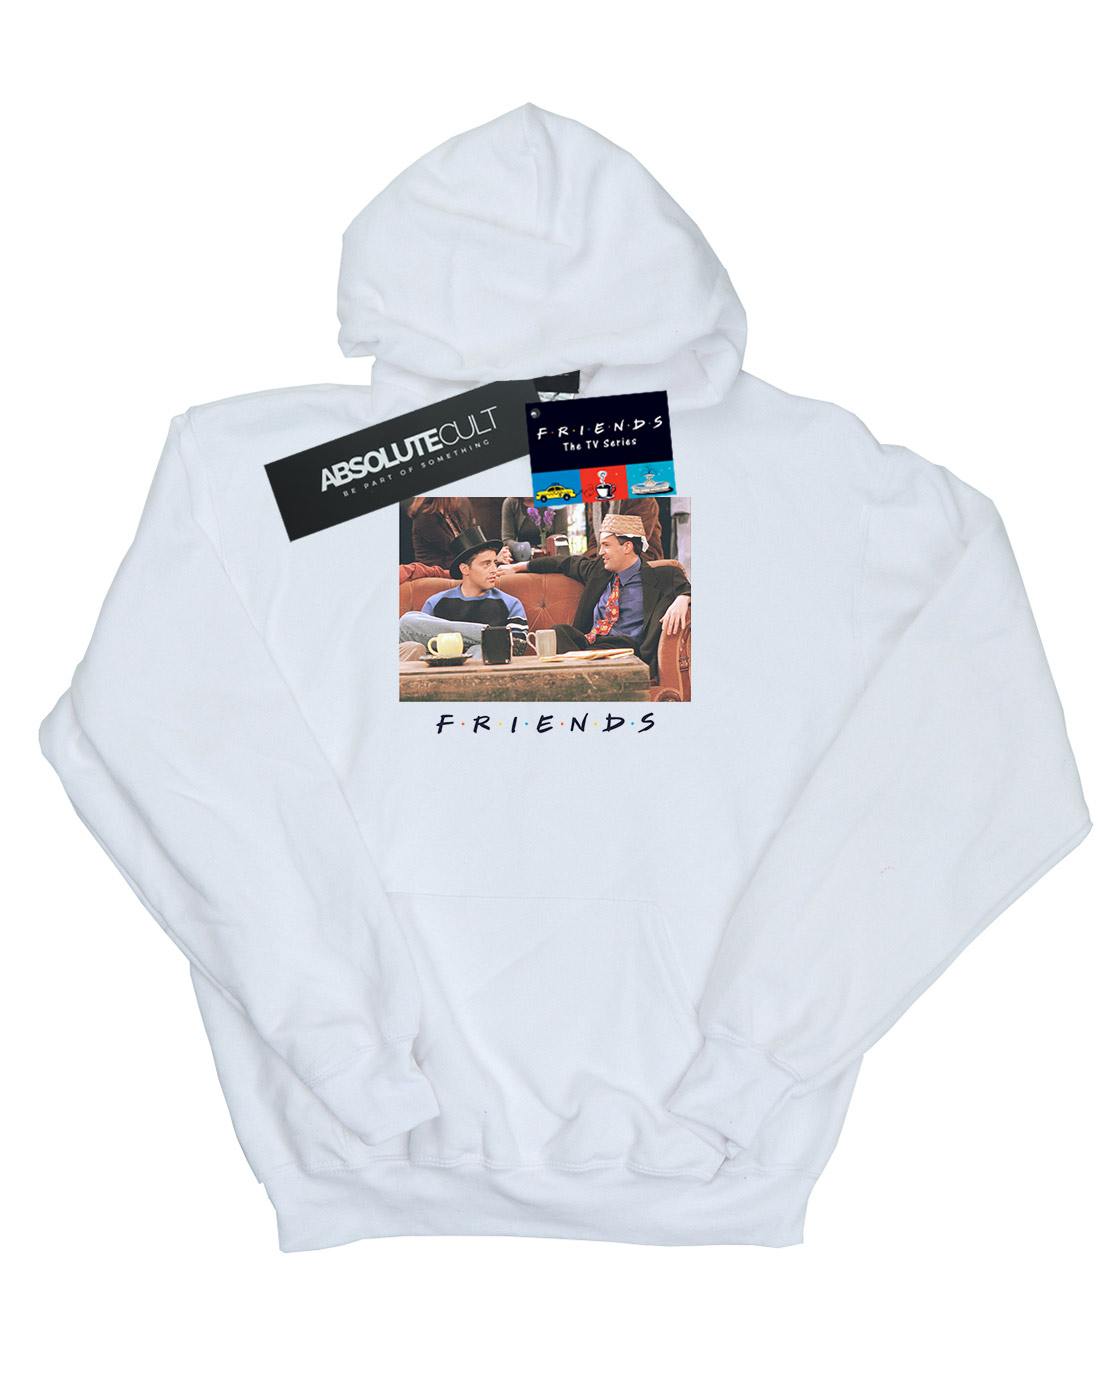 Absolute Cult Friends Girls Joey and Chandler Hats Hoodie